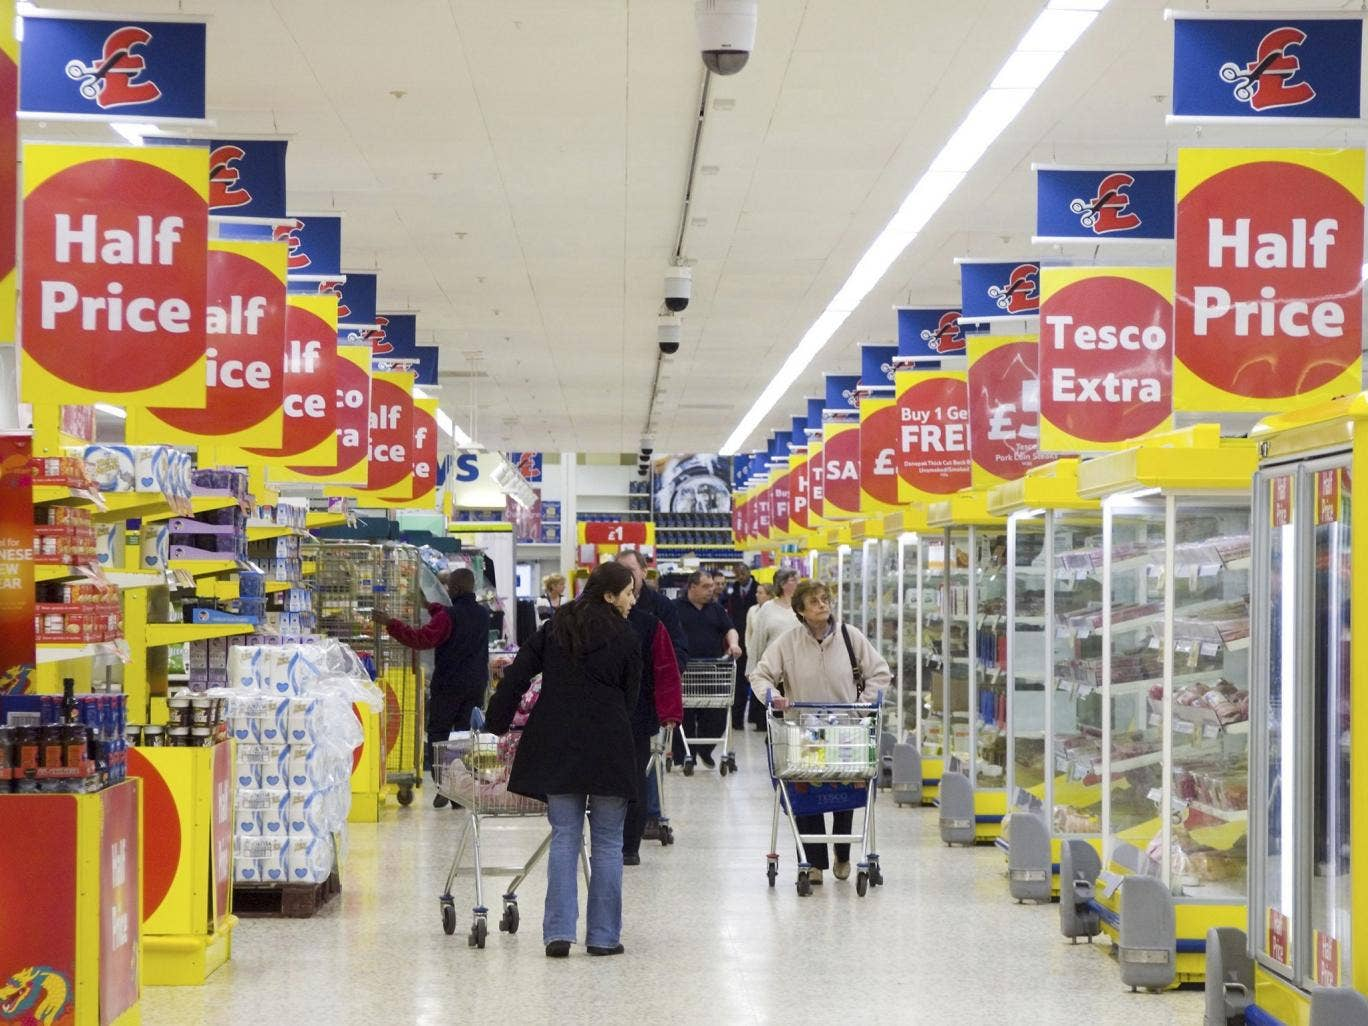 The incoming chief executive, Dave Lewis, is under pressure to find a long-term solution rather than a quick fix at Tesco